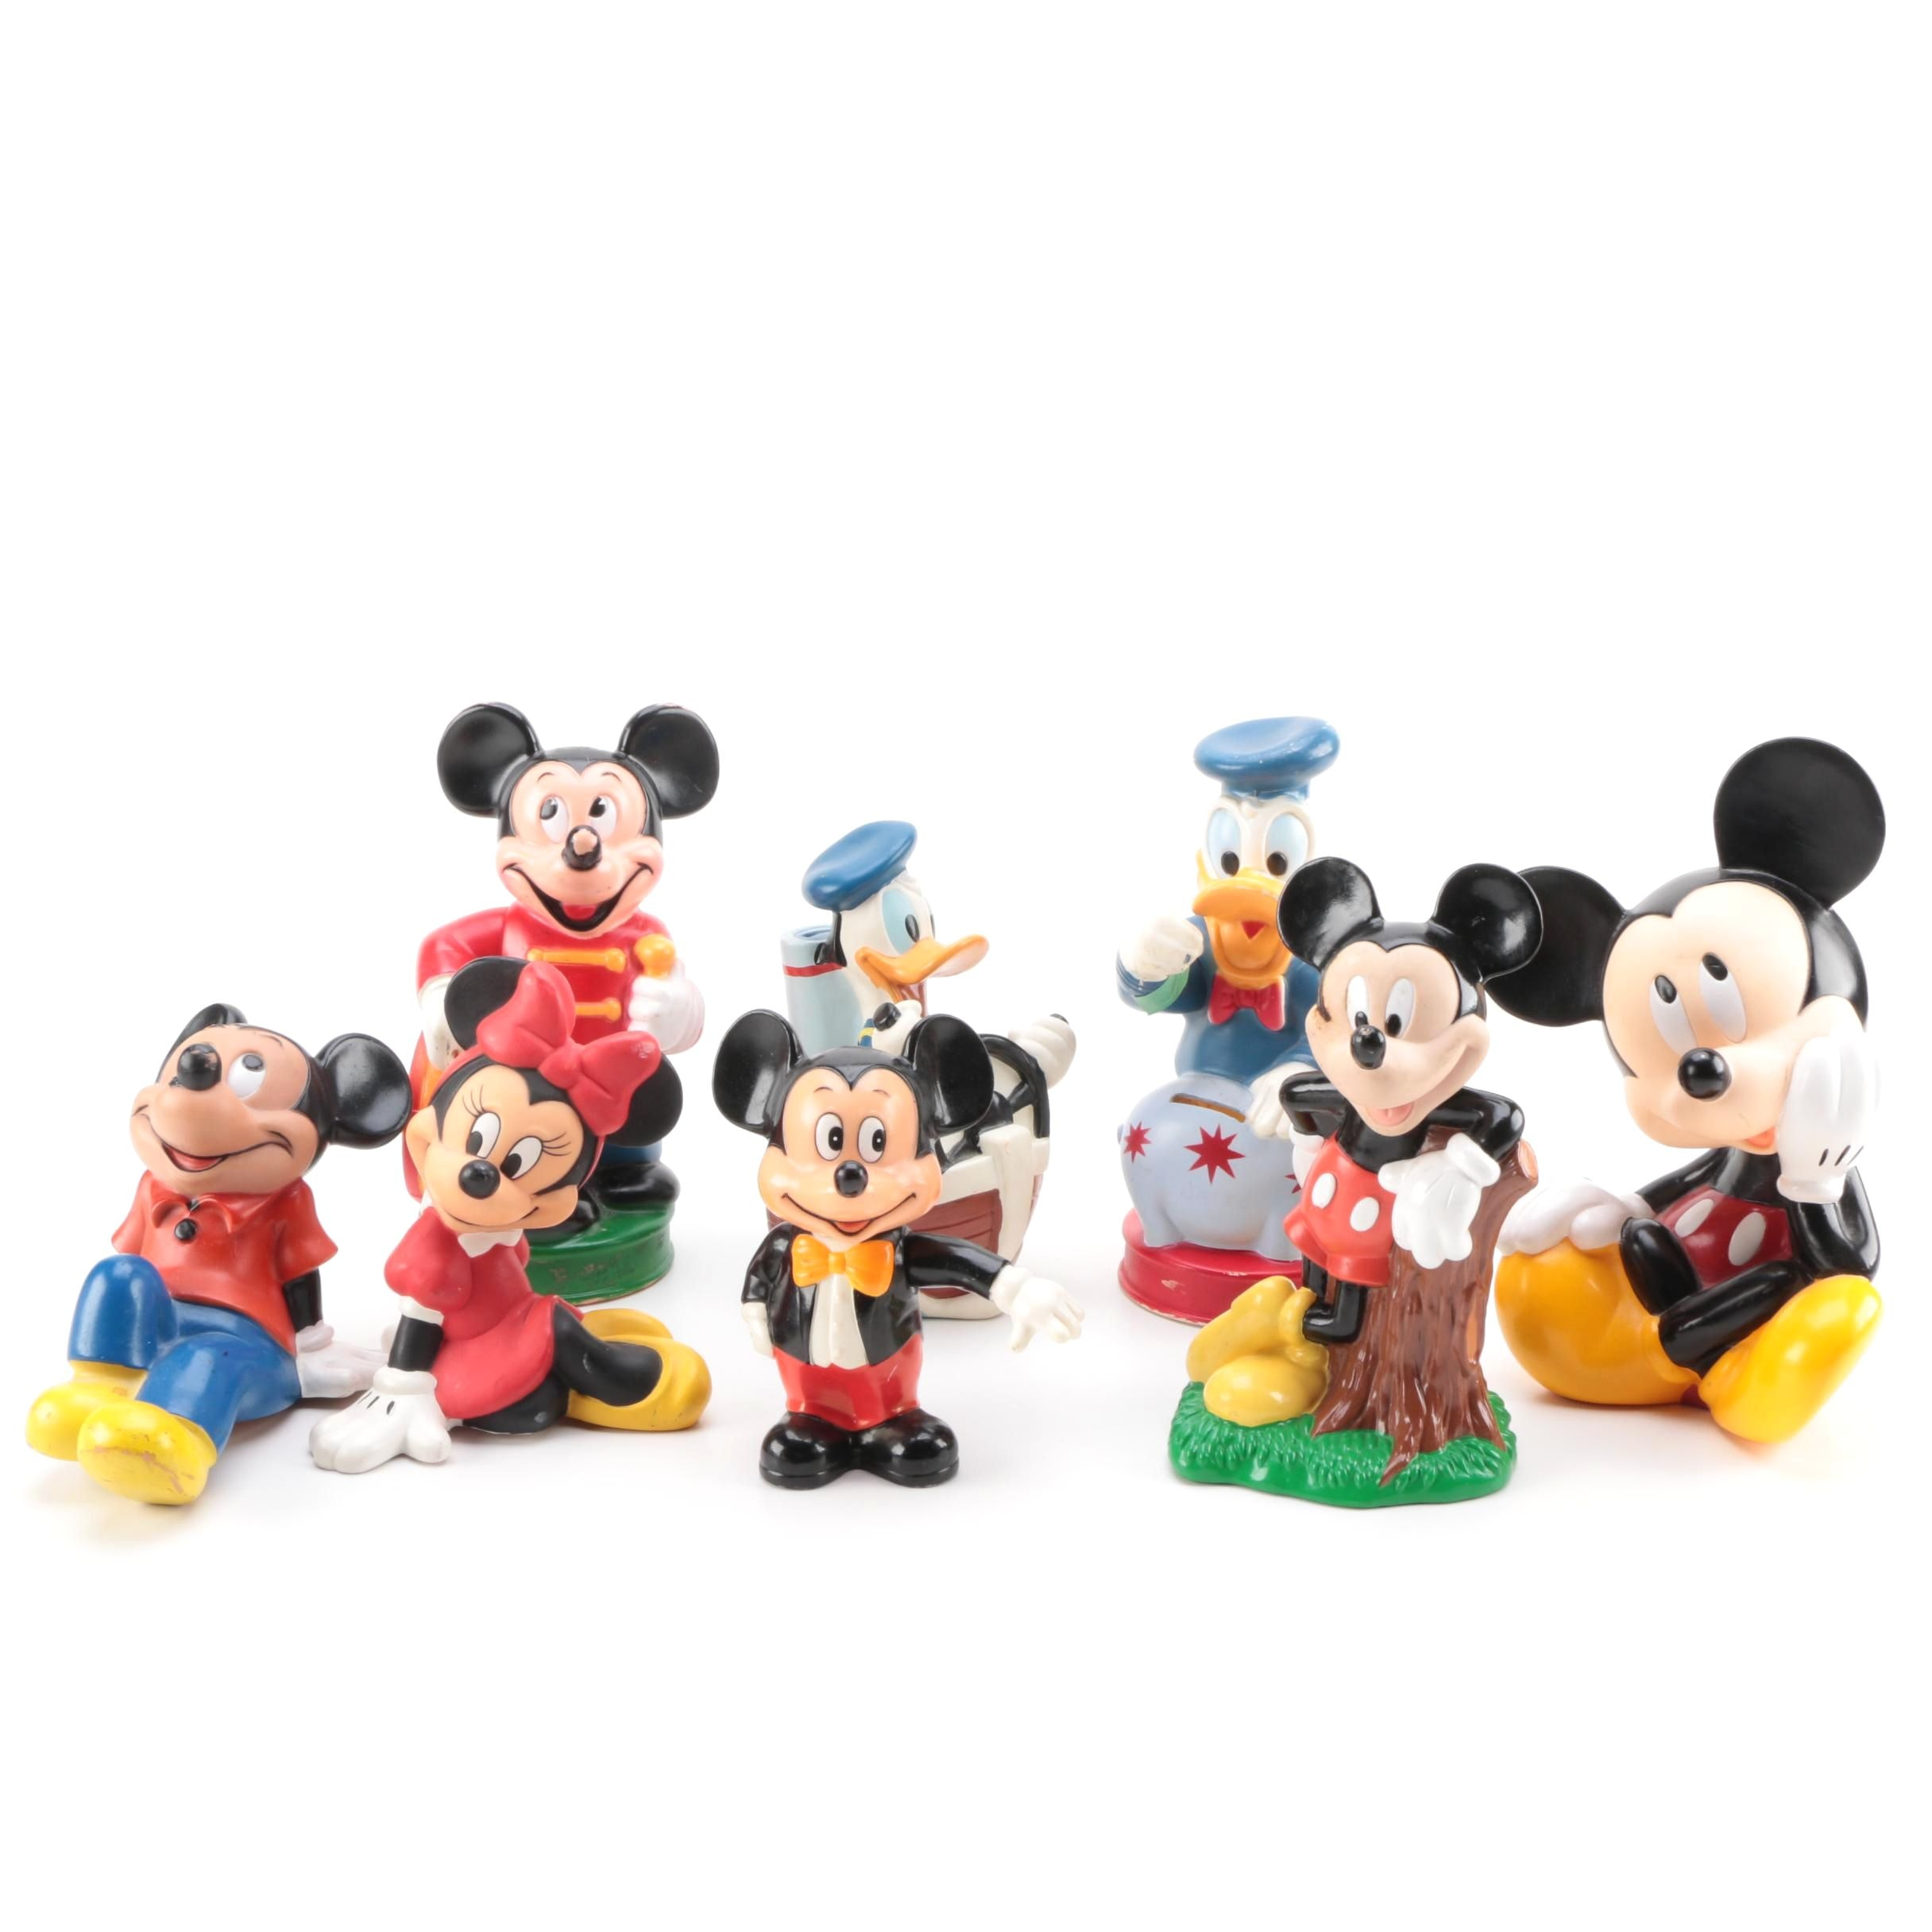 Mickey Mouse and Friends Disney Figurine Collection